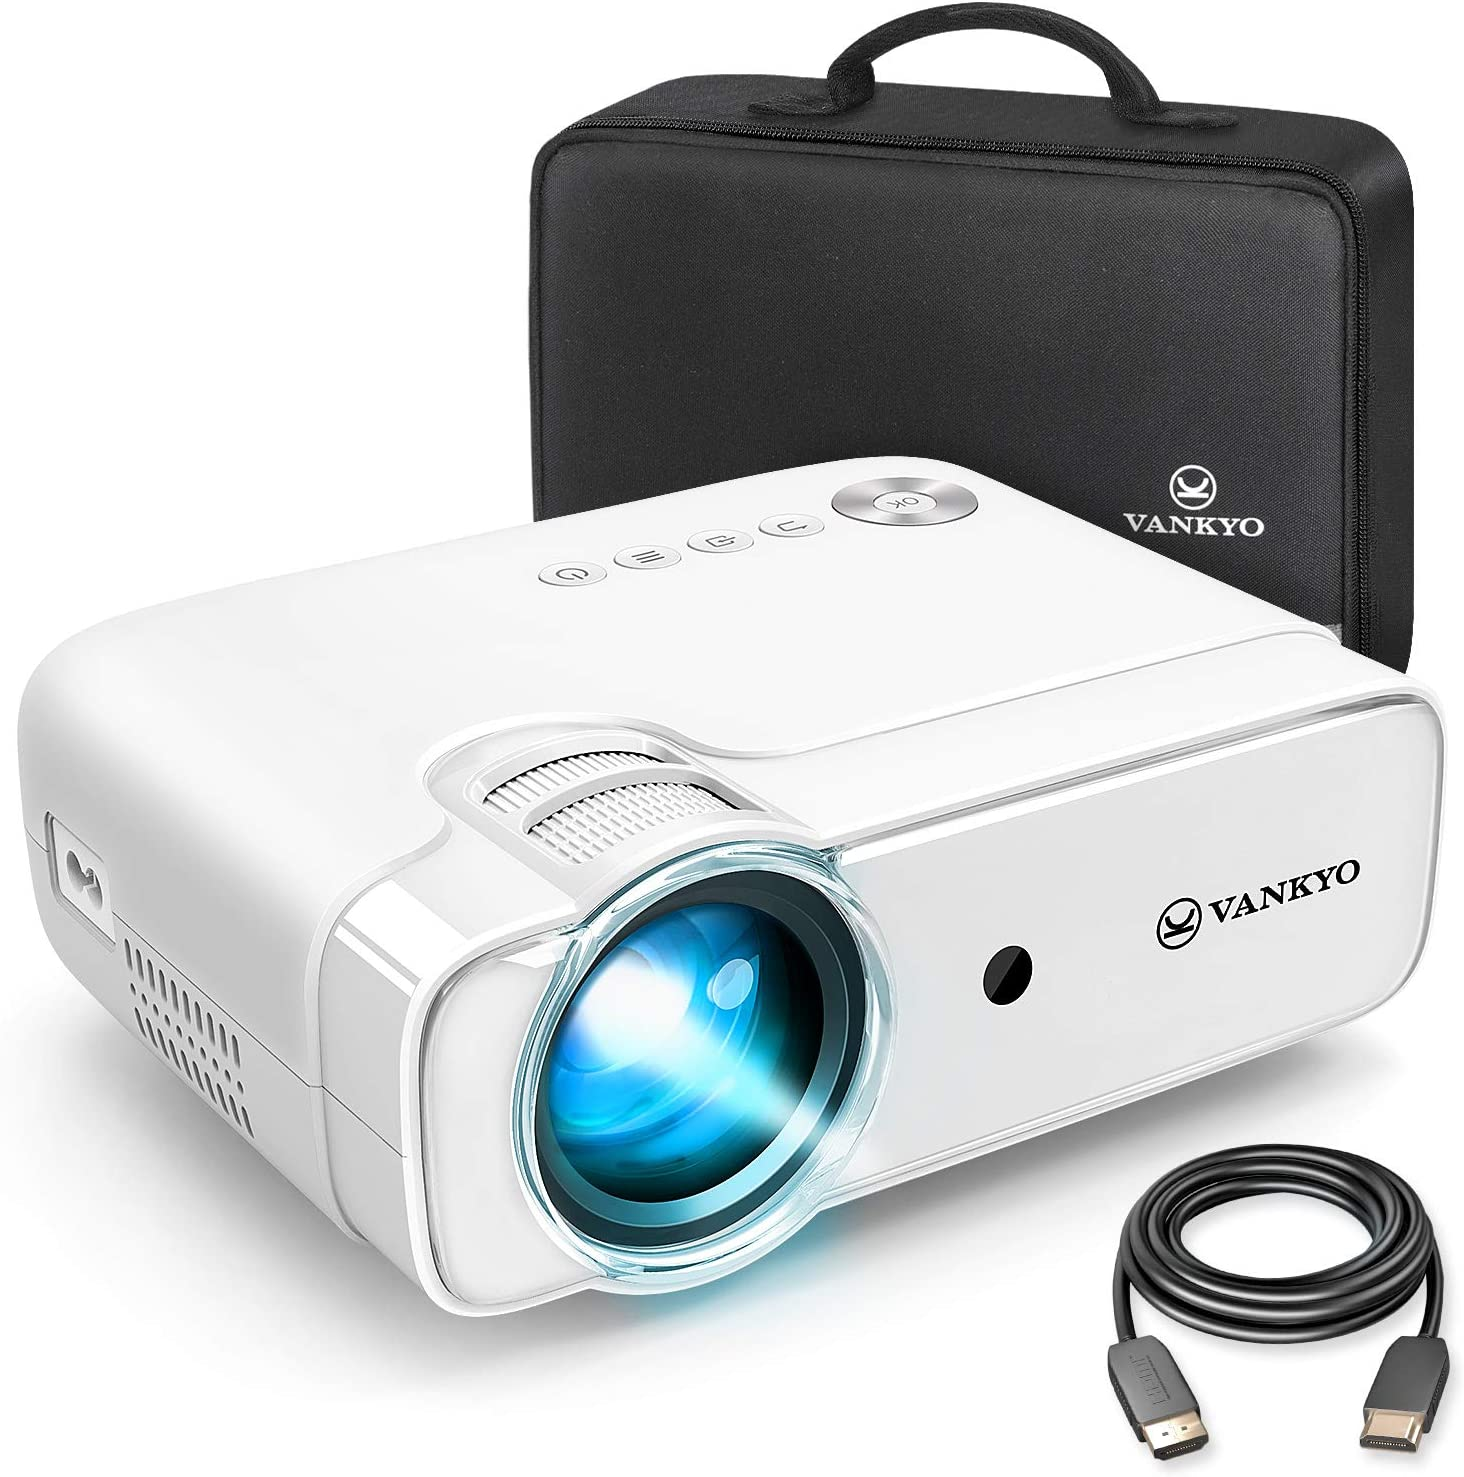 "VANKYO Leisure 430 Mini Movie Projector, 3600 Lux Video Projector with 50,000 Hours LED Lamp Life, 236"" Display, Support 1080P, HiFi Built-in Speaker, Compatible with TV Stick, HDMI, SD, AV, VGA, USB"